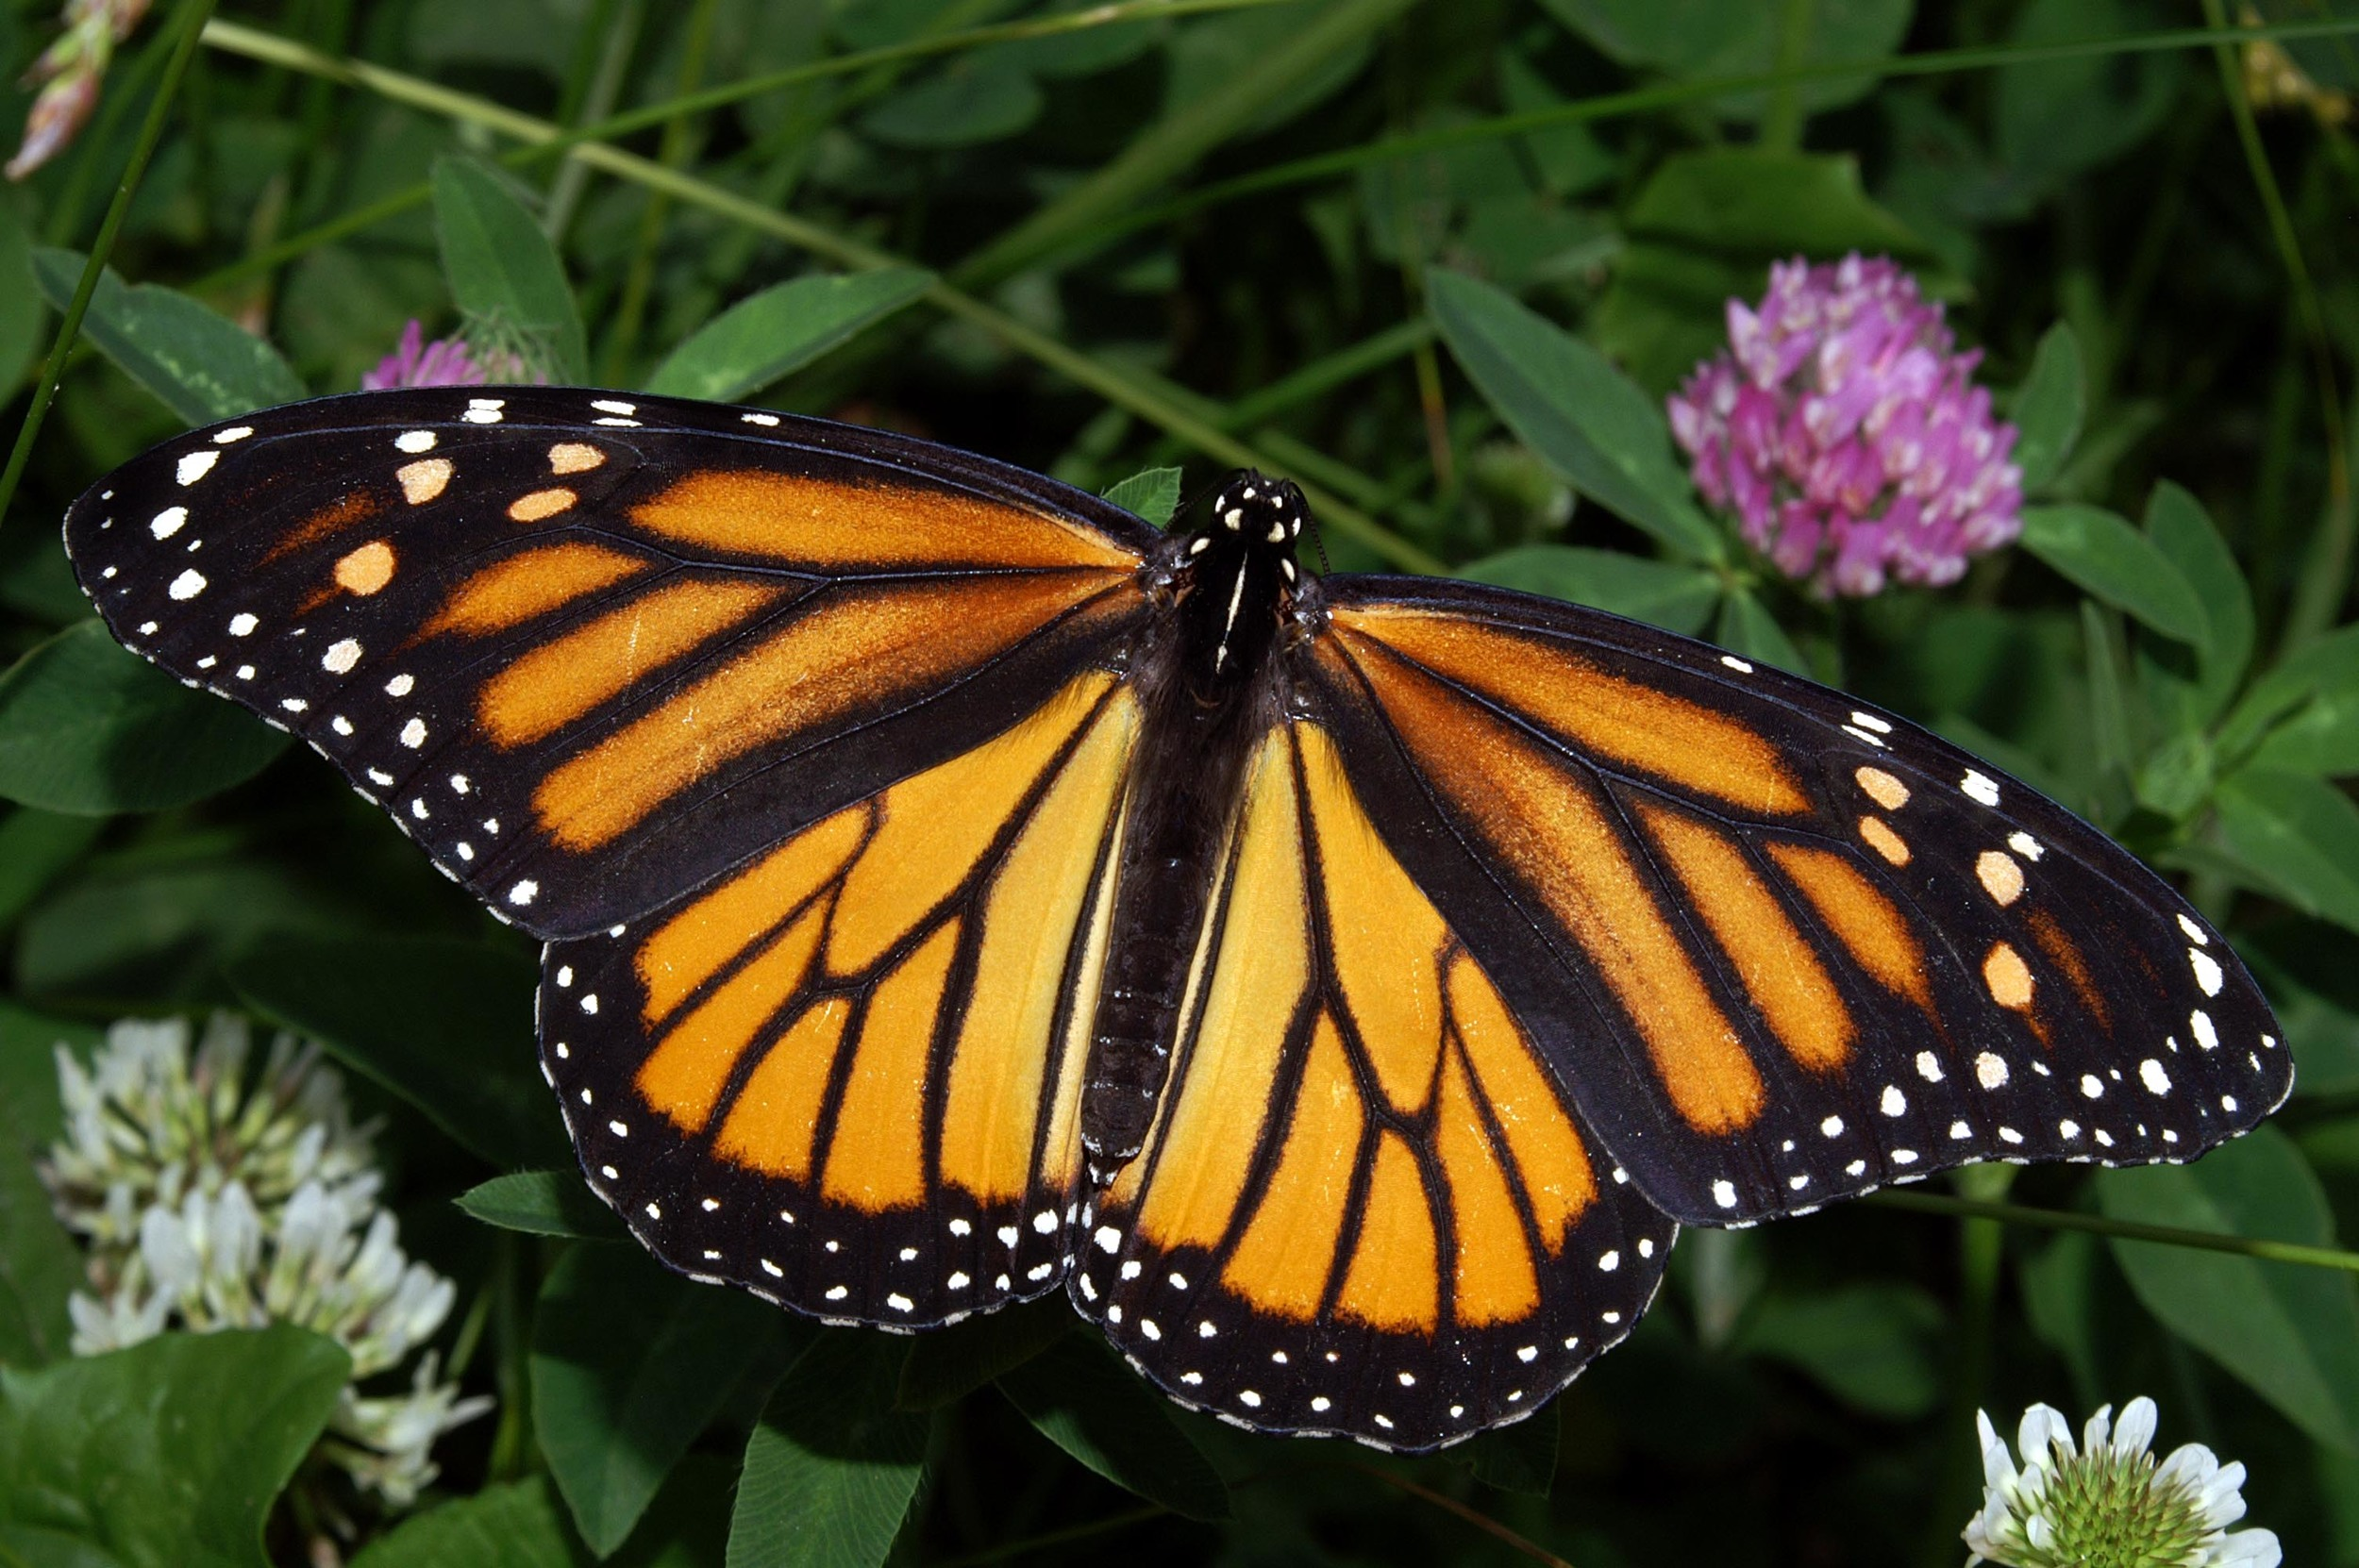 Danaus plexippus  |  Kenneth Dwain Harrelson/Wikimedia Commons  [CC BY-SA 3.0]